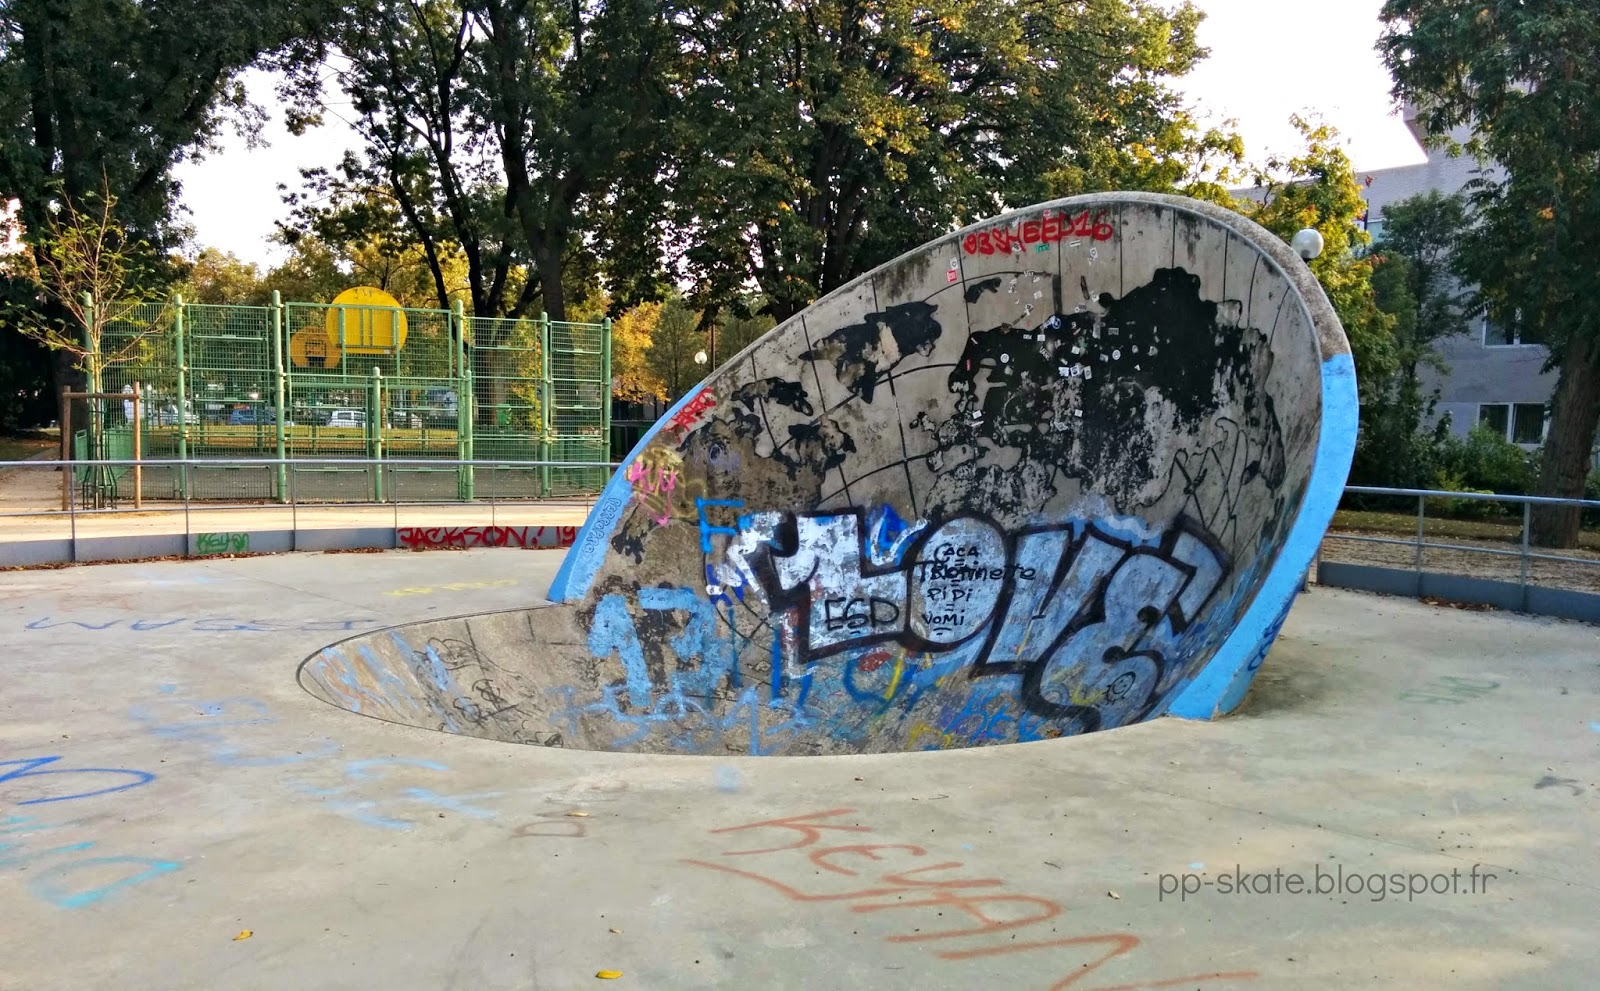 Skatepark paris craddle porte italie